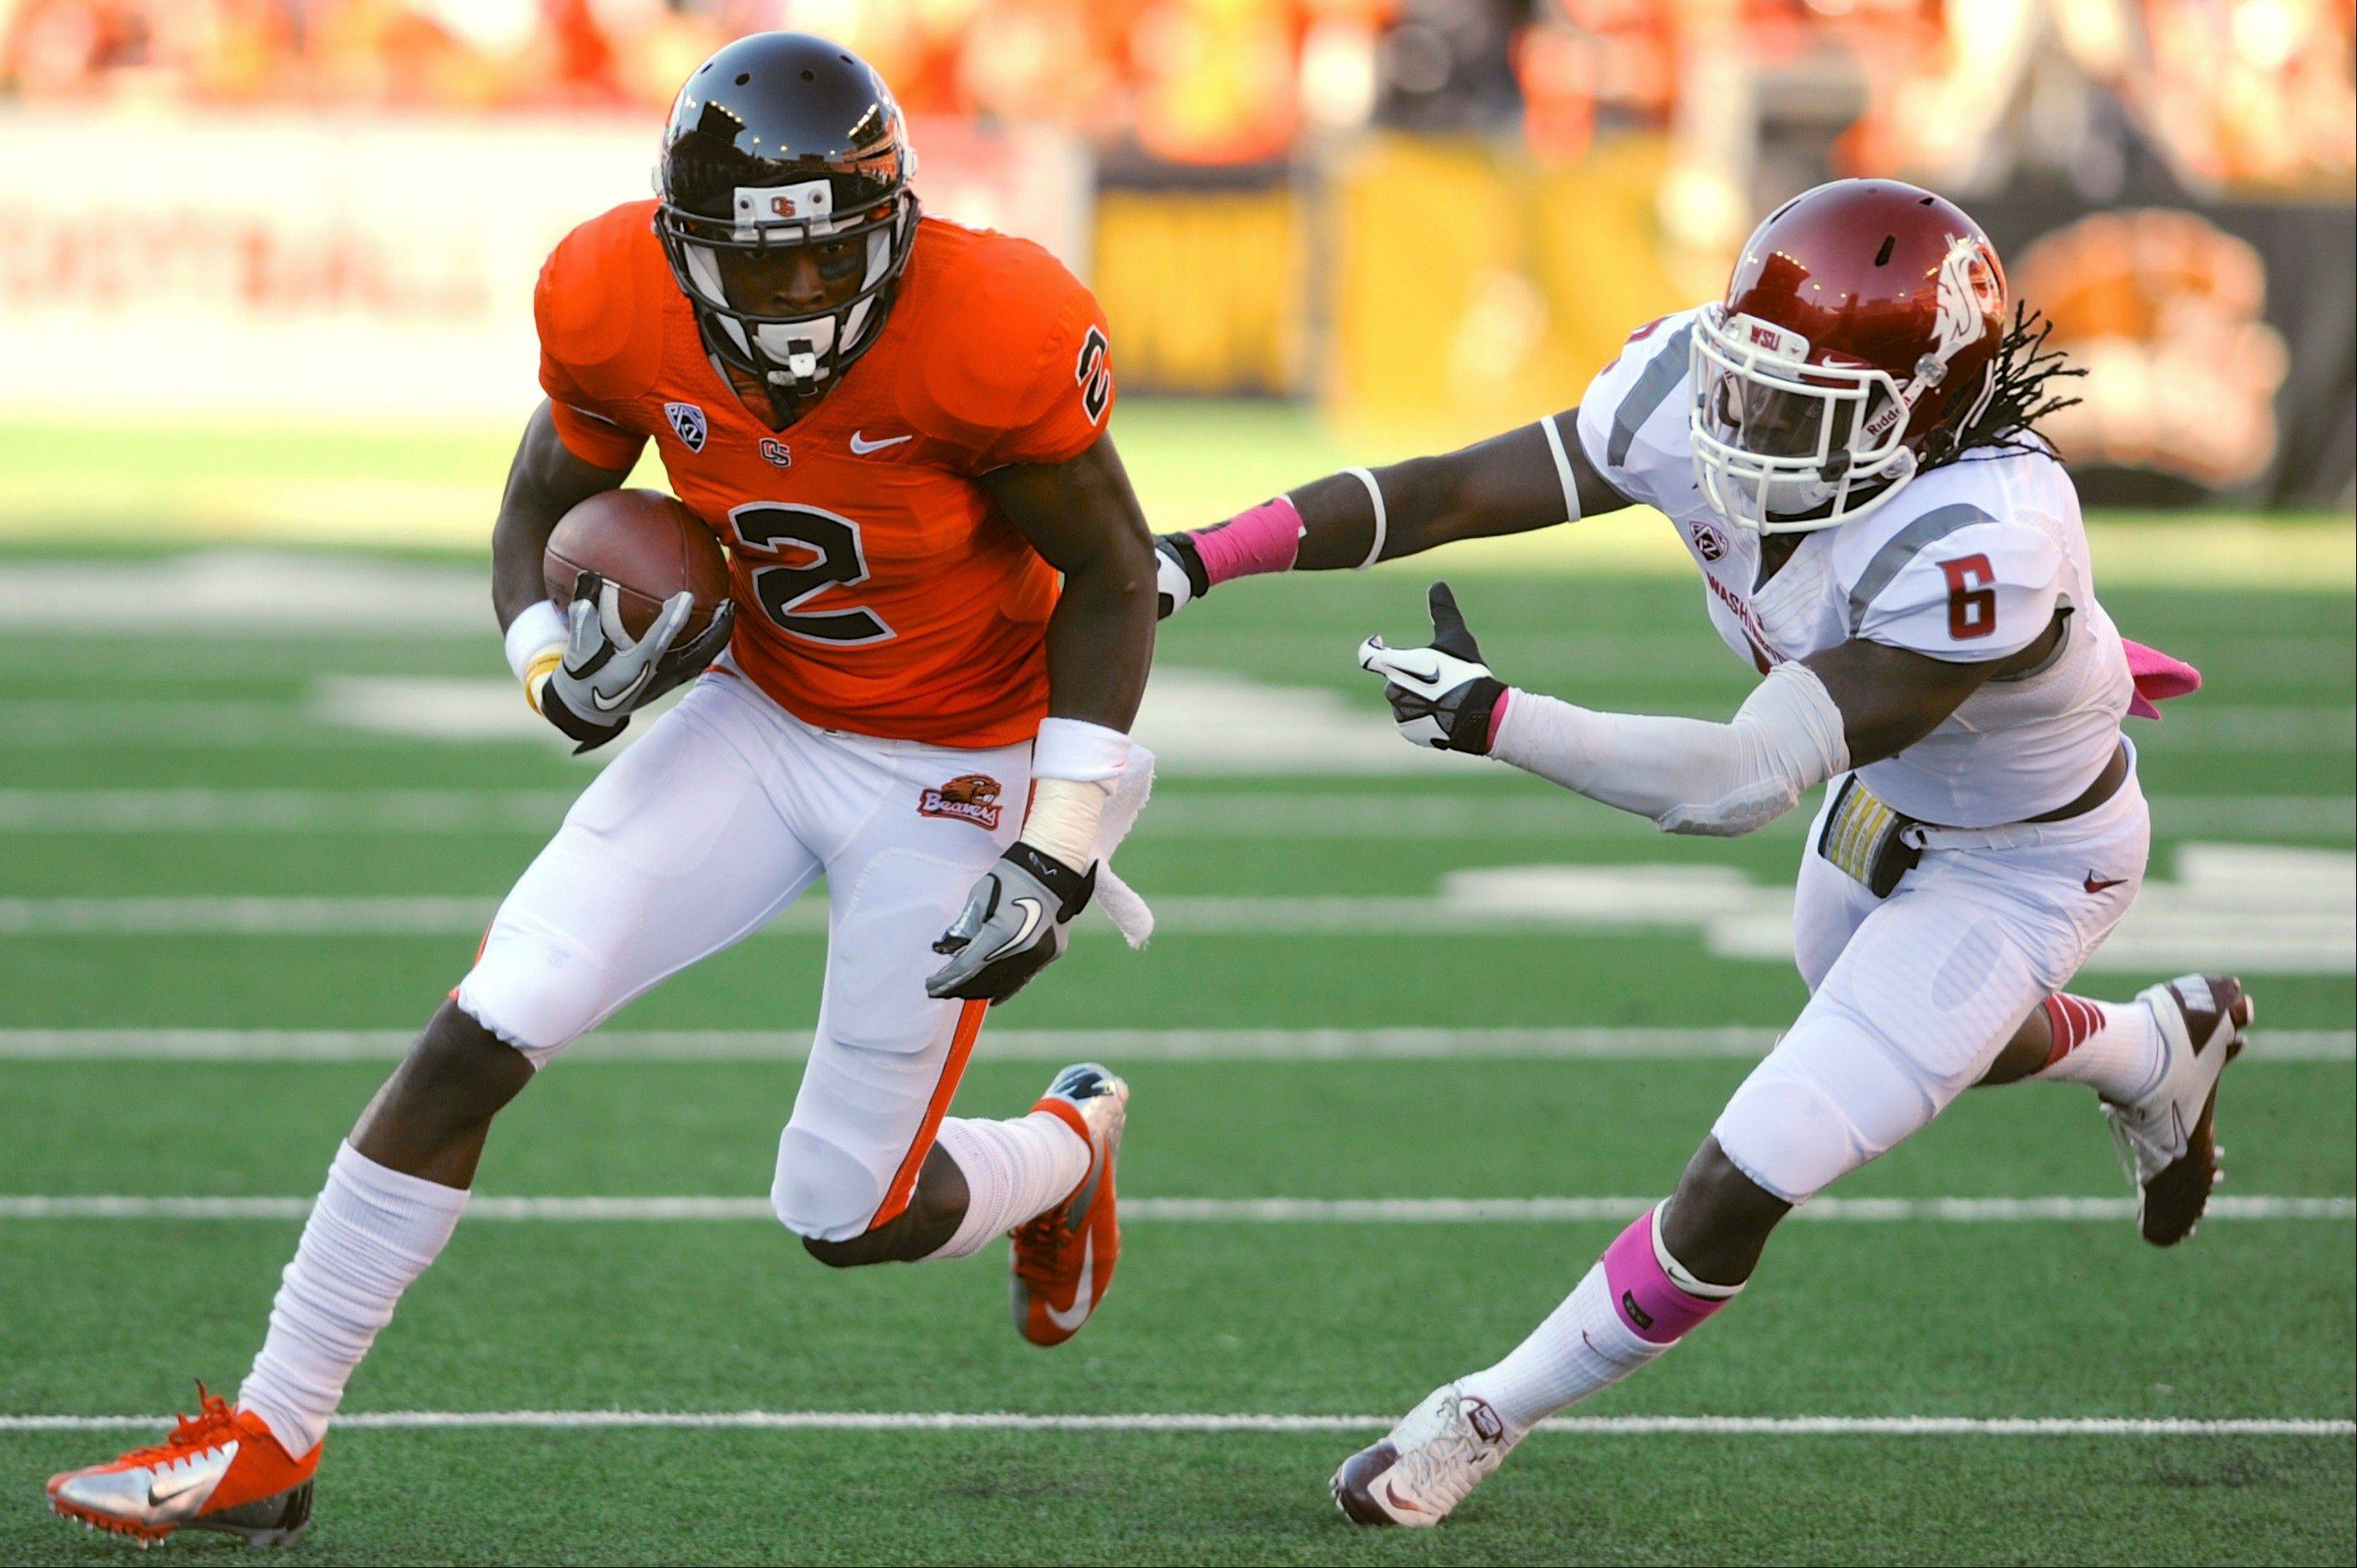 Oregon State�s Markus Wheaton runs against Washington State�s Damante Horton during the first half Saturday in Corvallis, Ore.